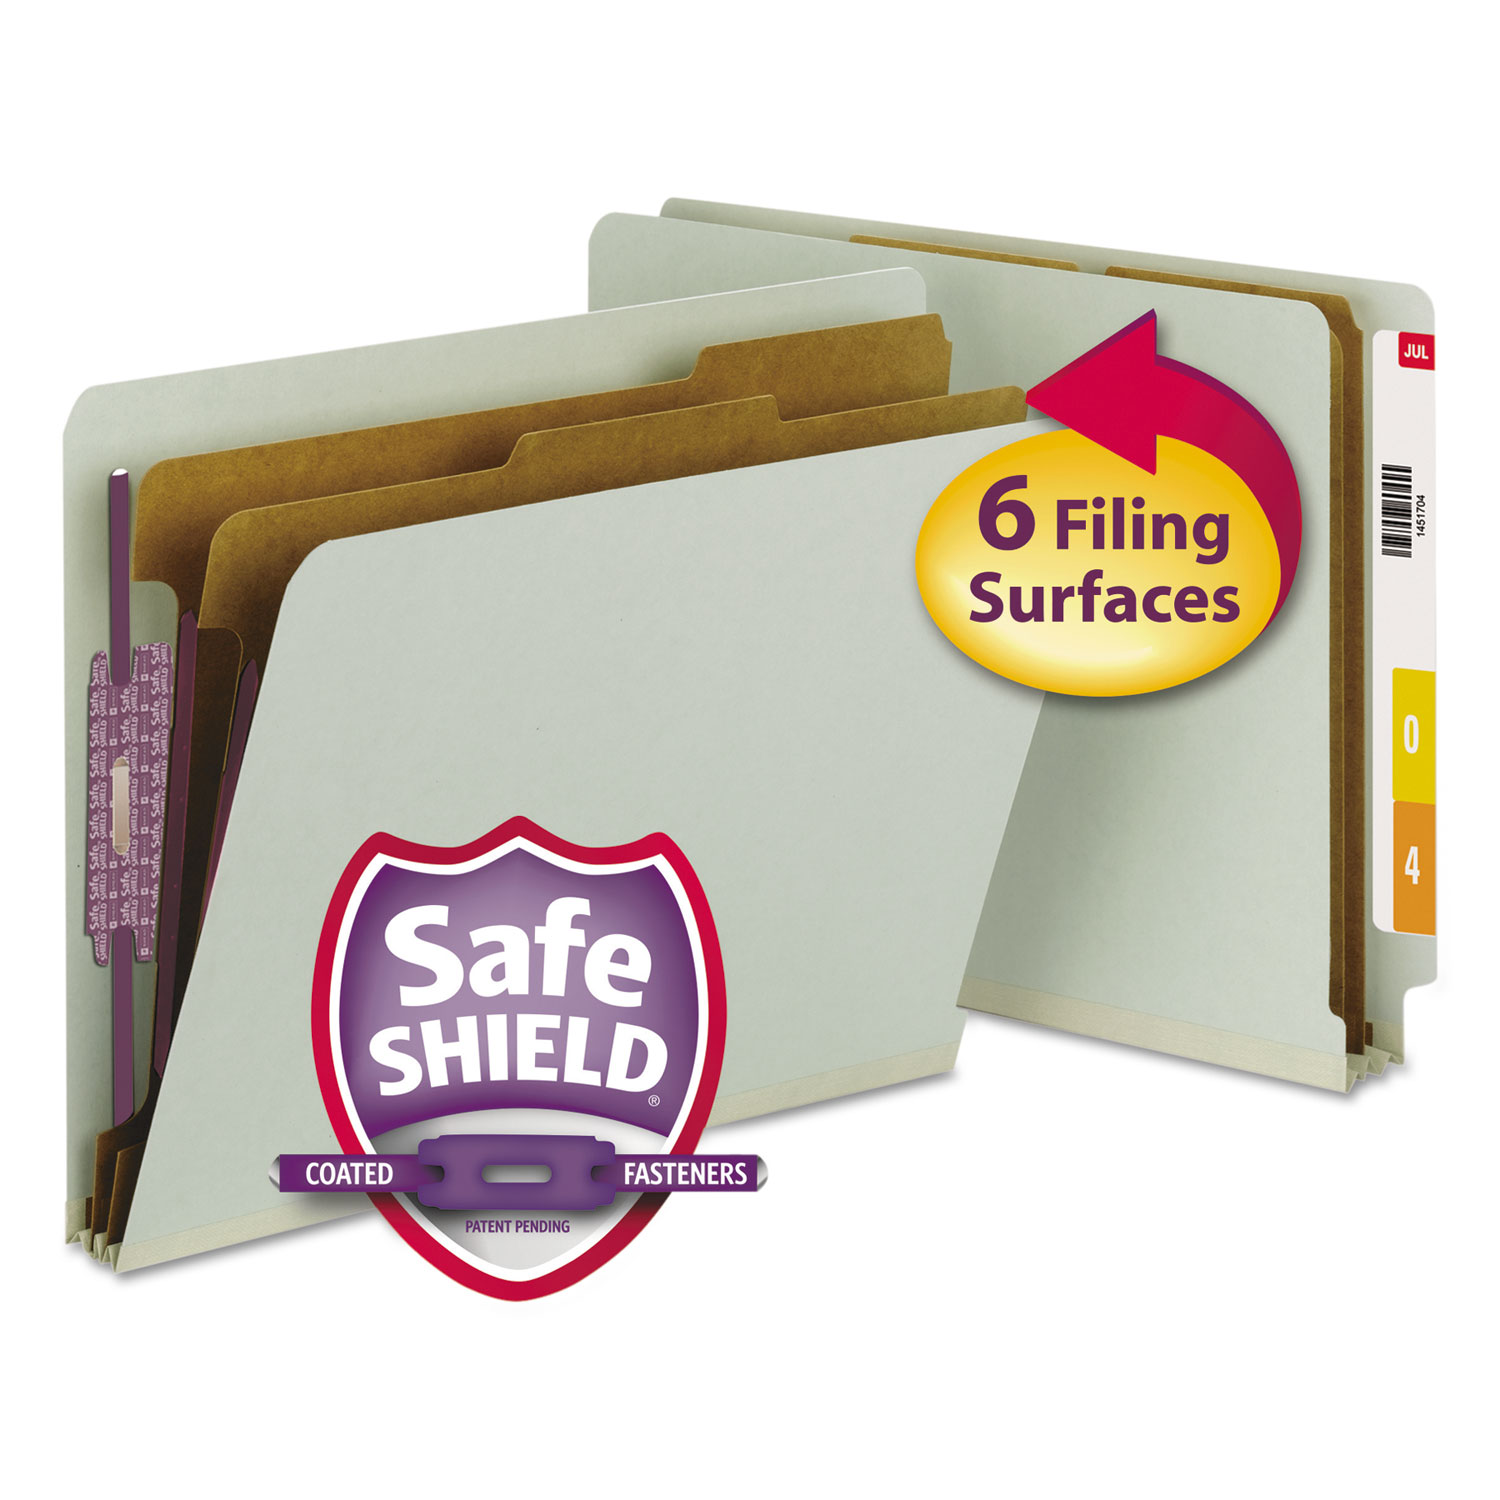 End Tab Pressboard Classification Folders with SafeSHIELD Coated Fasteners, 2 Dividers, Letter Size, Gray-Green, 10/Box